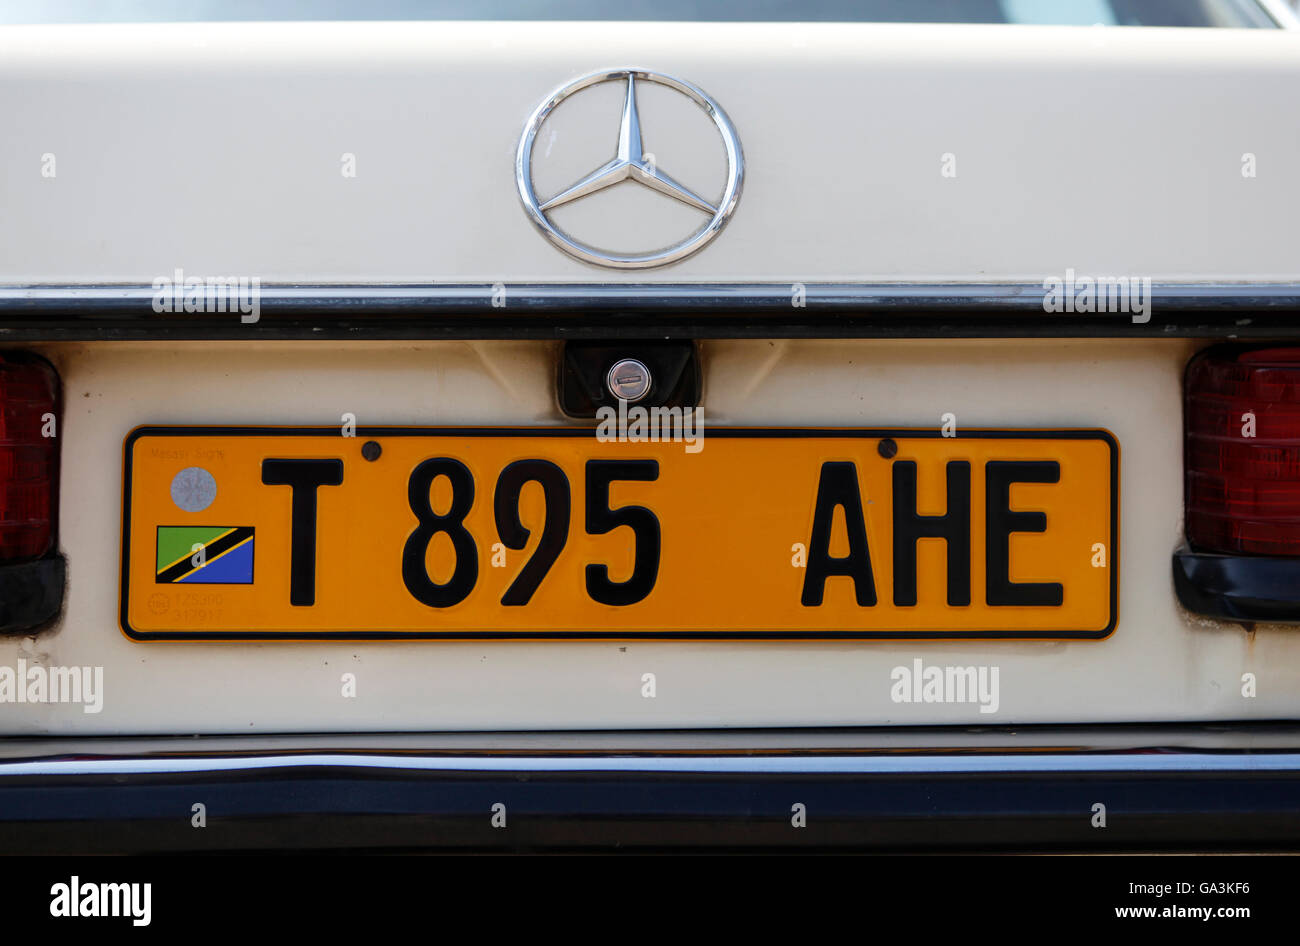 Yellow Tanzanian license plate on an old Mercedes in Tanzania, East Africa, Africa - Stock Image